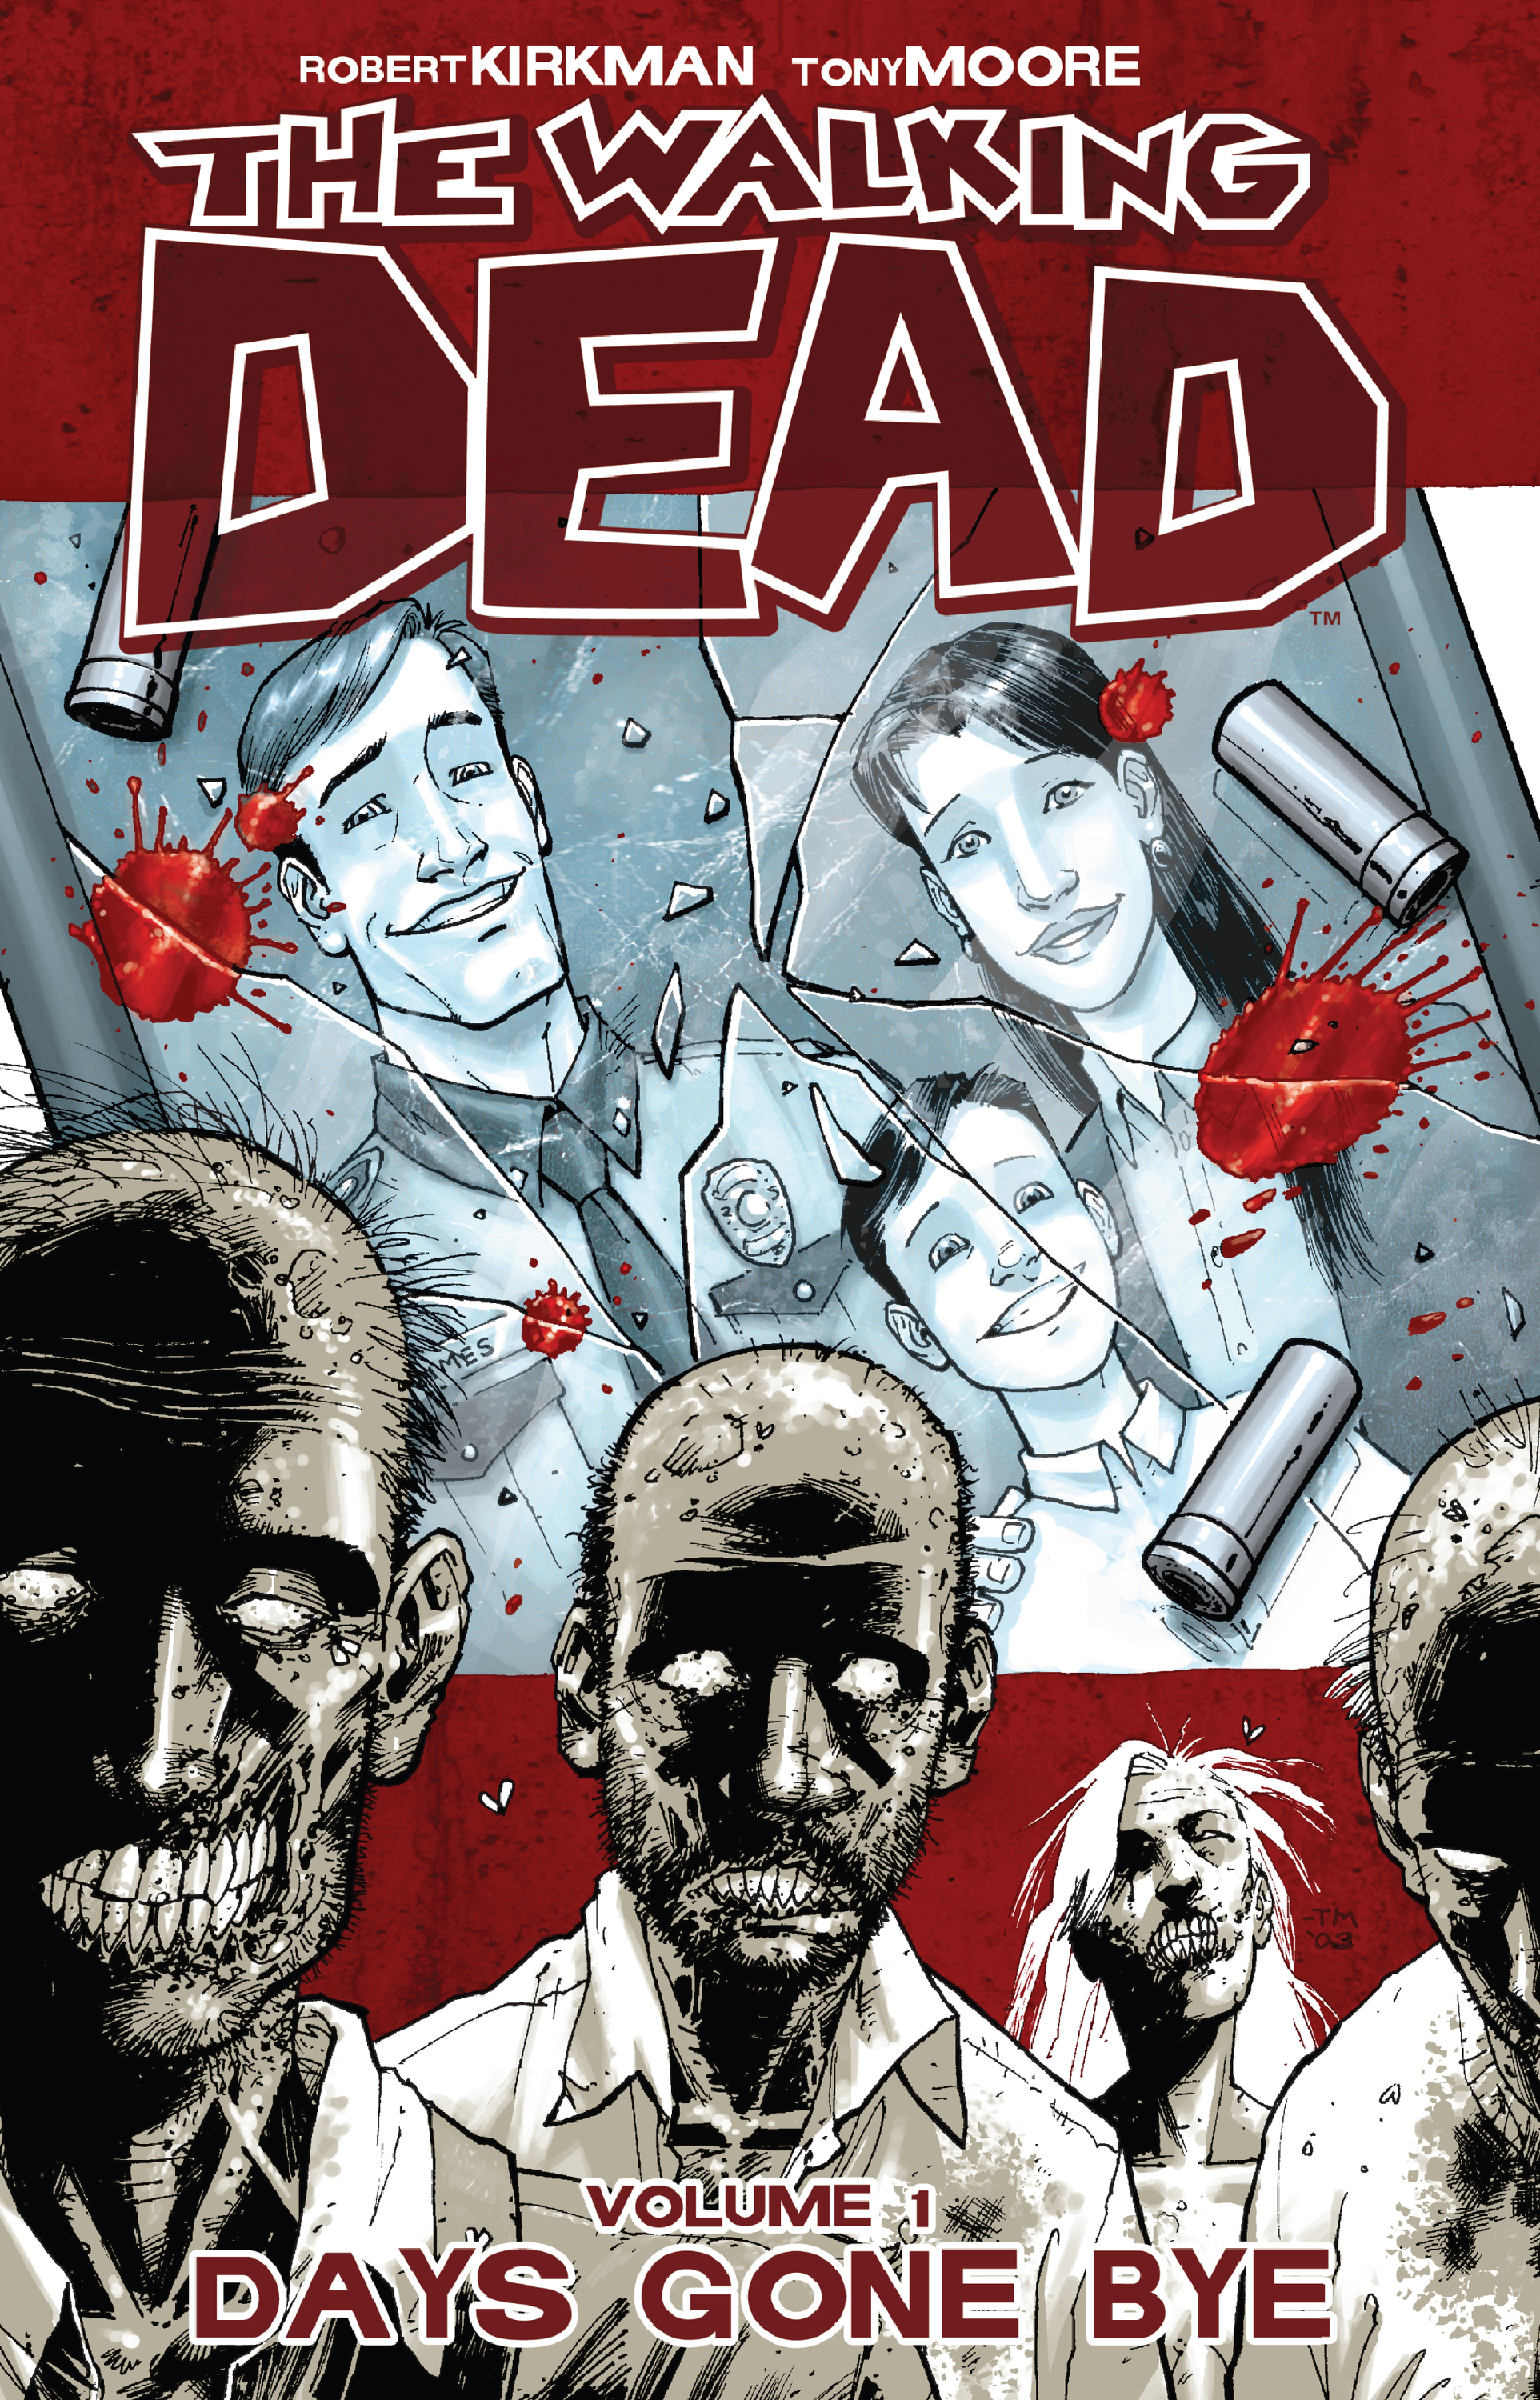 The Walking Dead, Vol. 1: Days Gone Bye By:  Tony Moore,Robert Kirkman